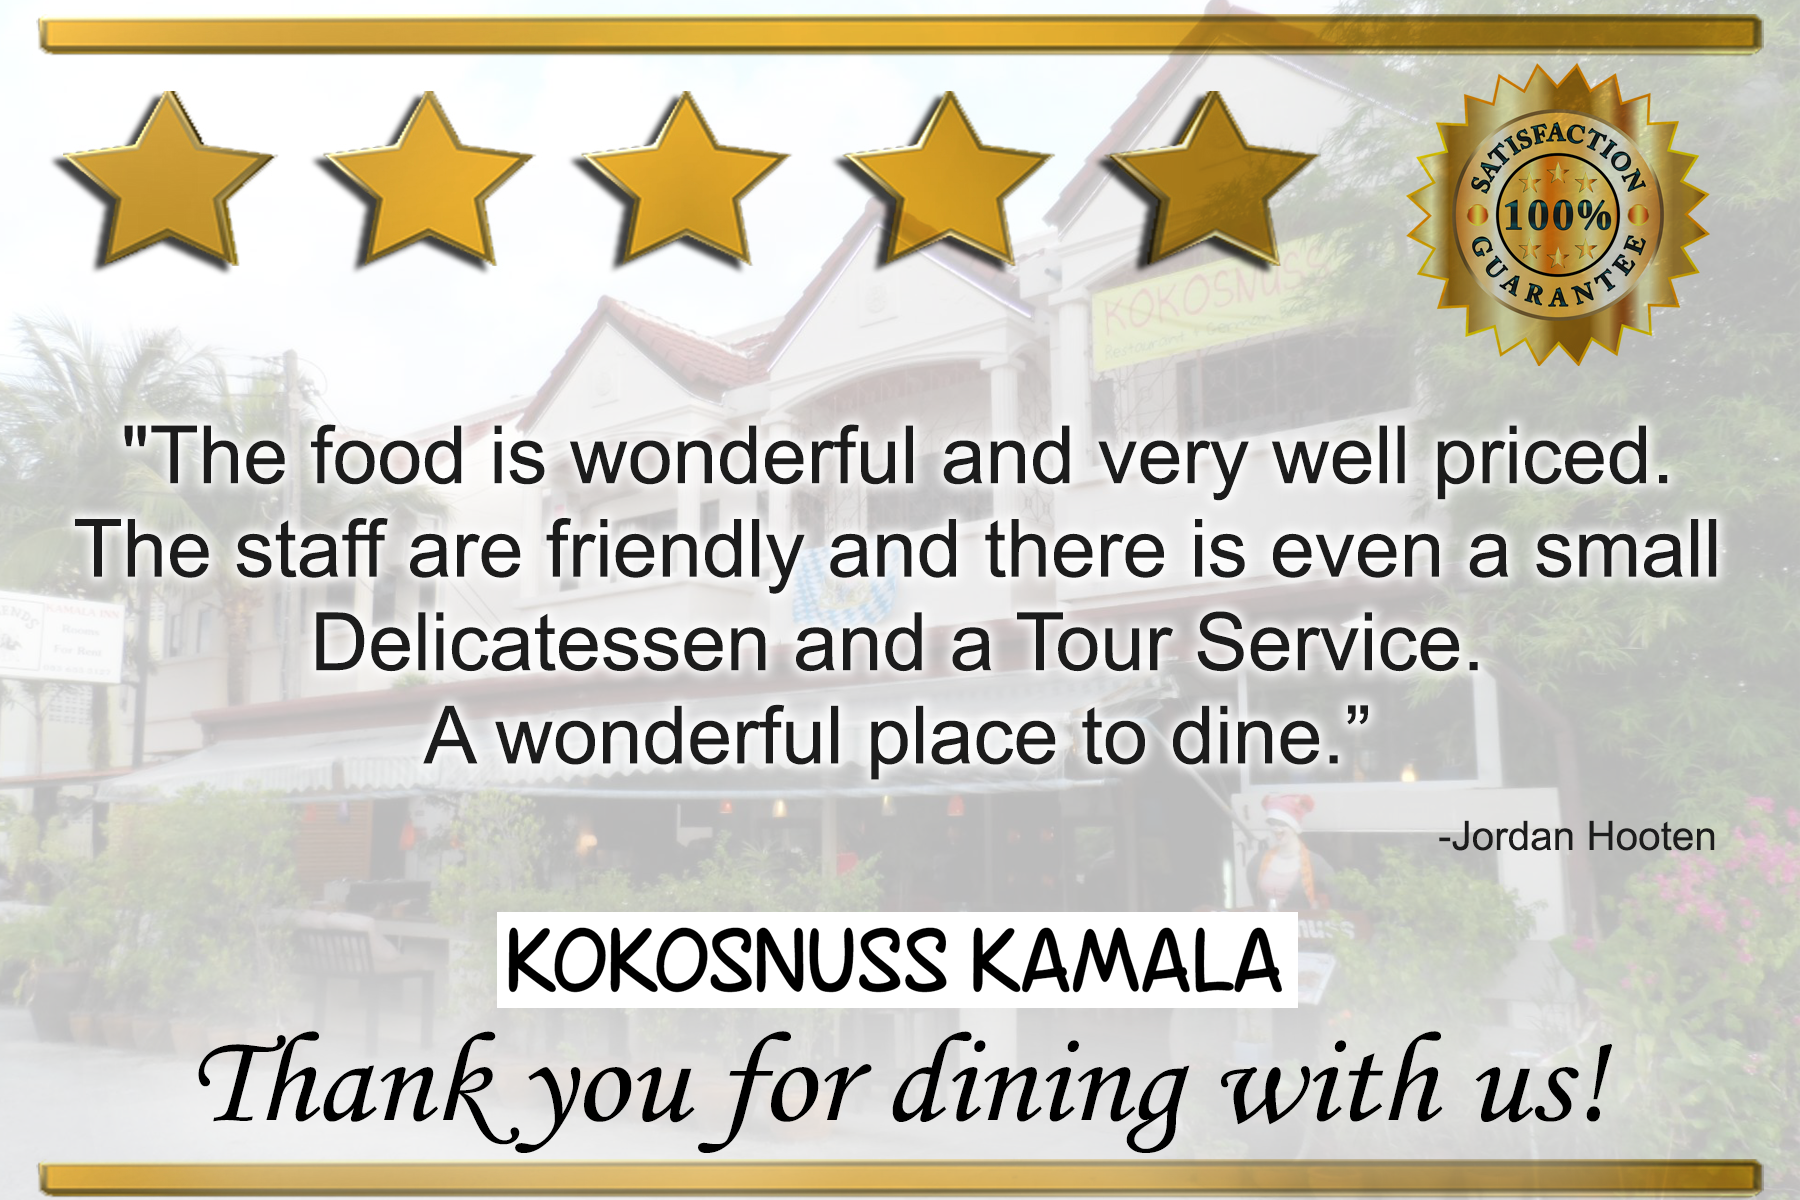 5 Star Review From Virginia Downton Beautiful Little German Restaurant In A Quiet Area Just Off The Main Drag The Foo Wonderful Places Friendly